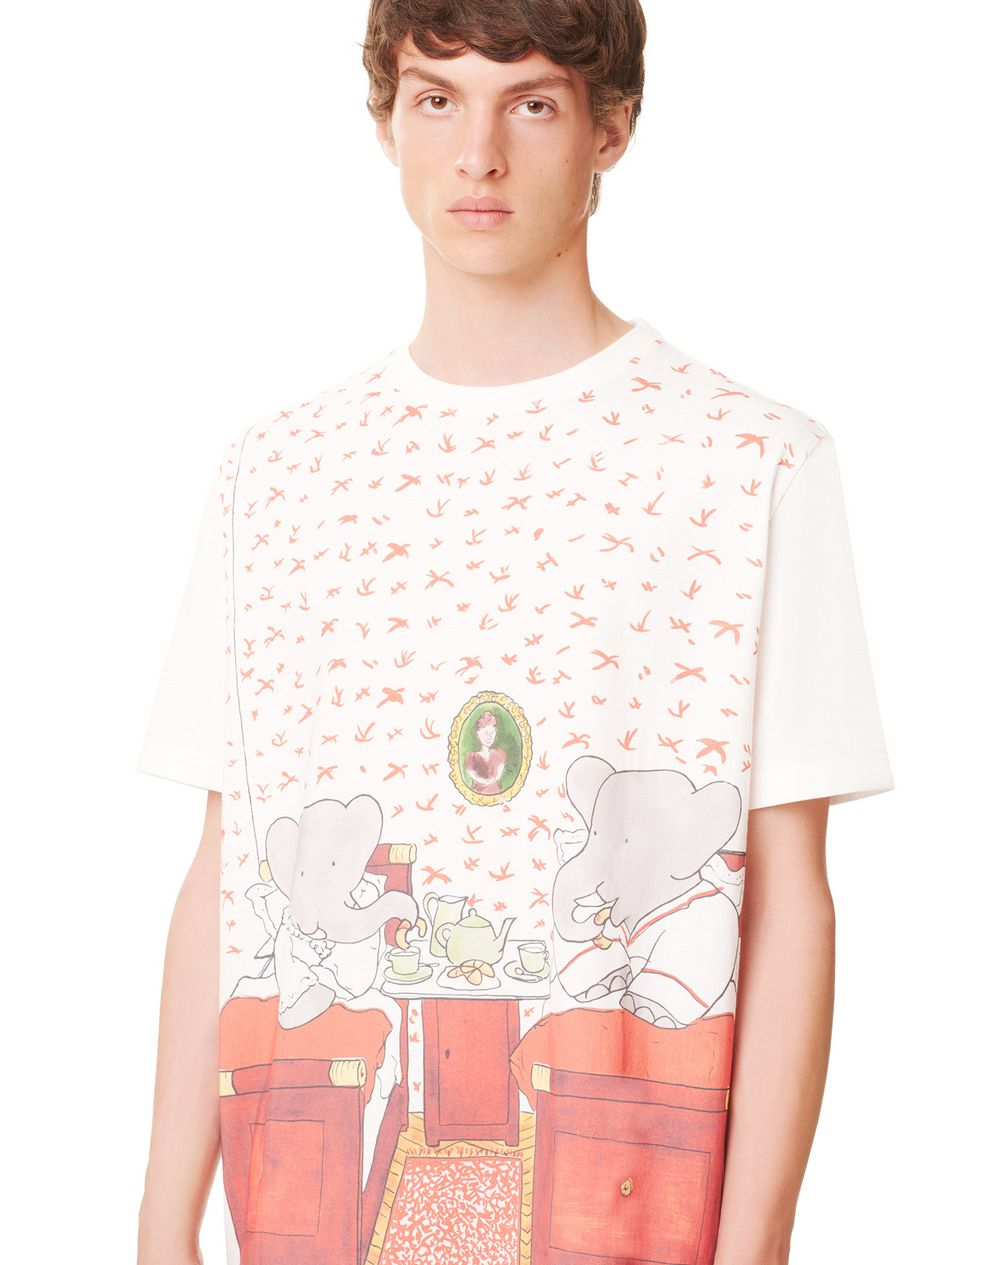 SHORT-SLEEVED COTTON T-SHIRT WITH BABAR BED PRINT - Lanvin